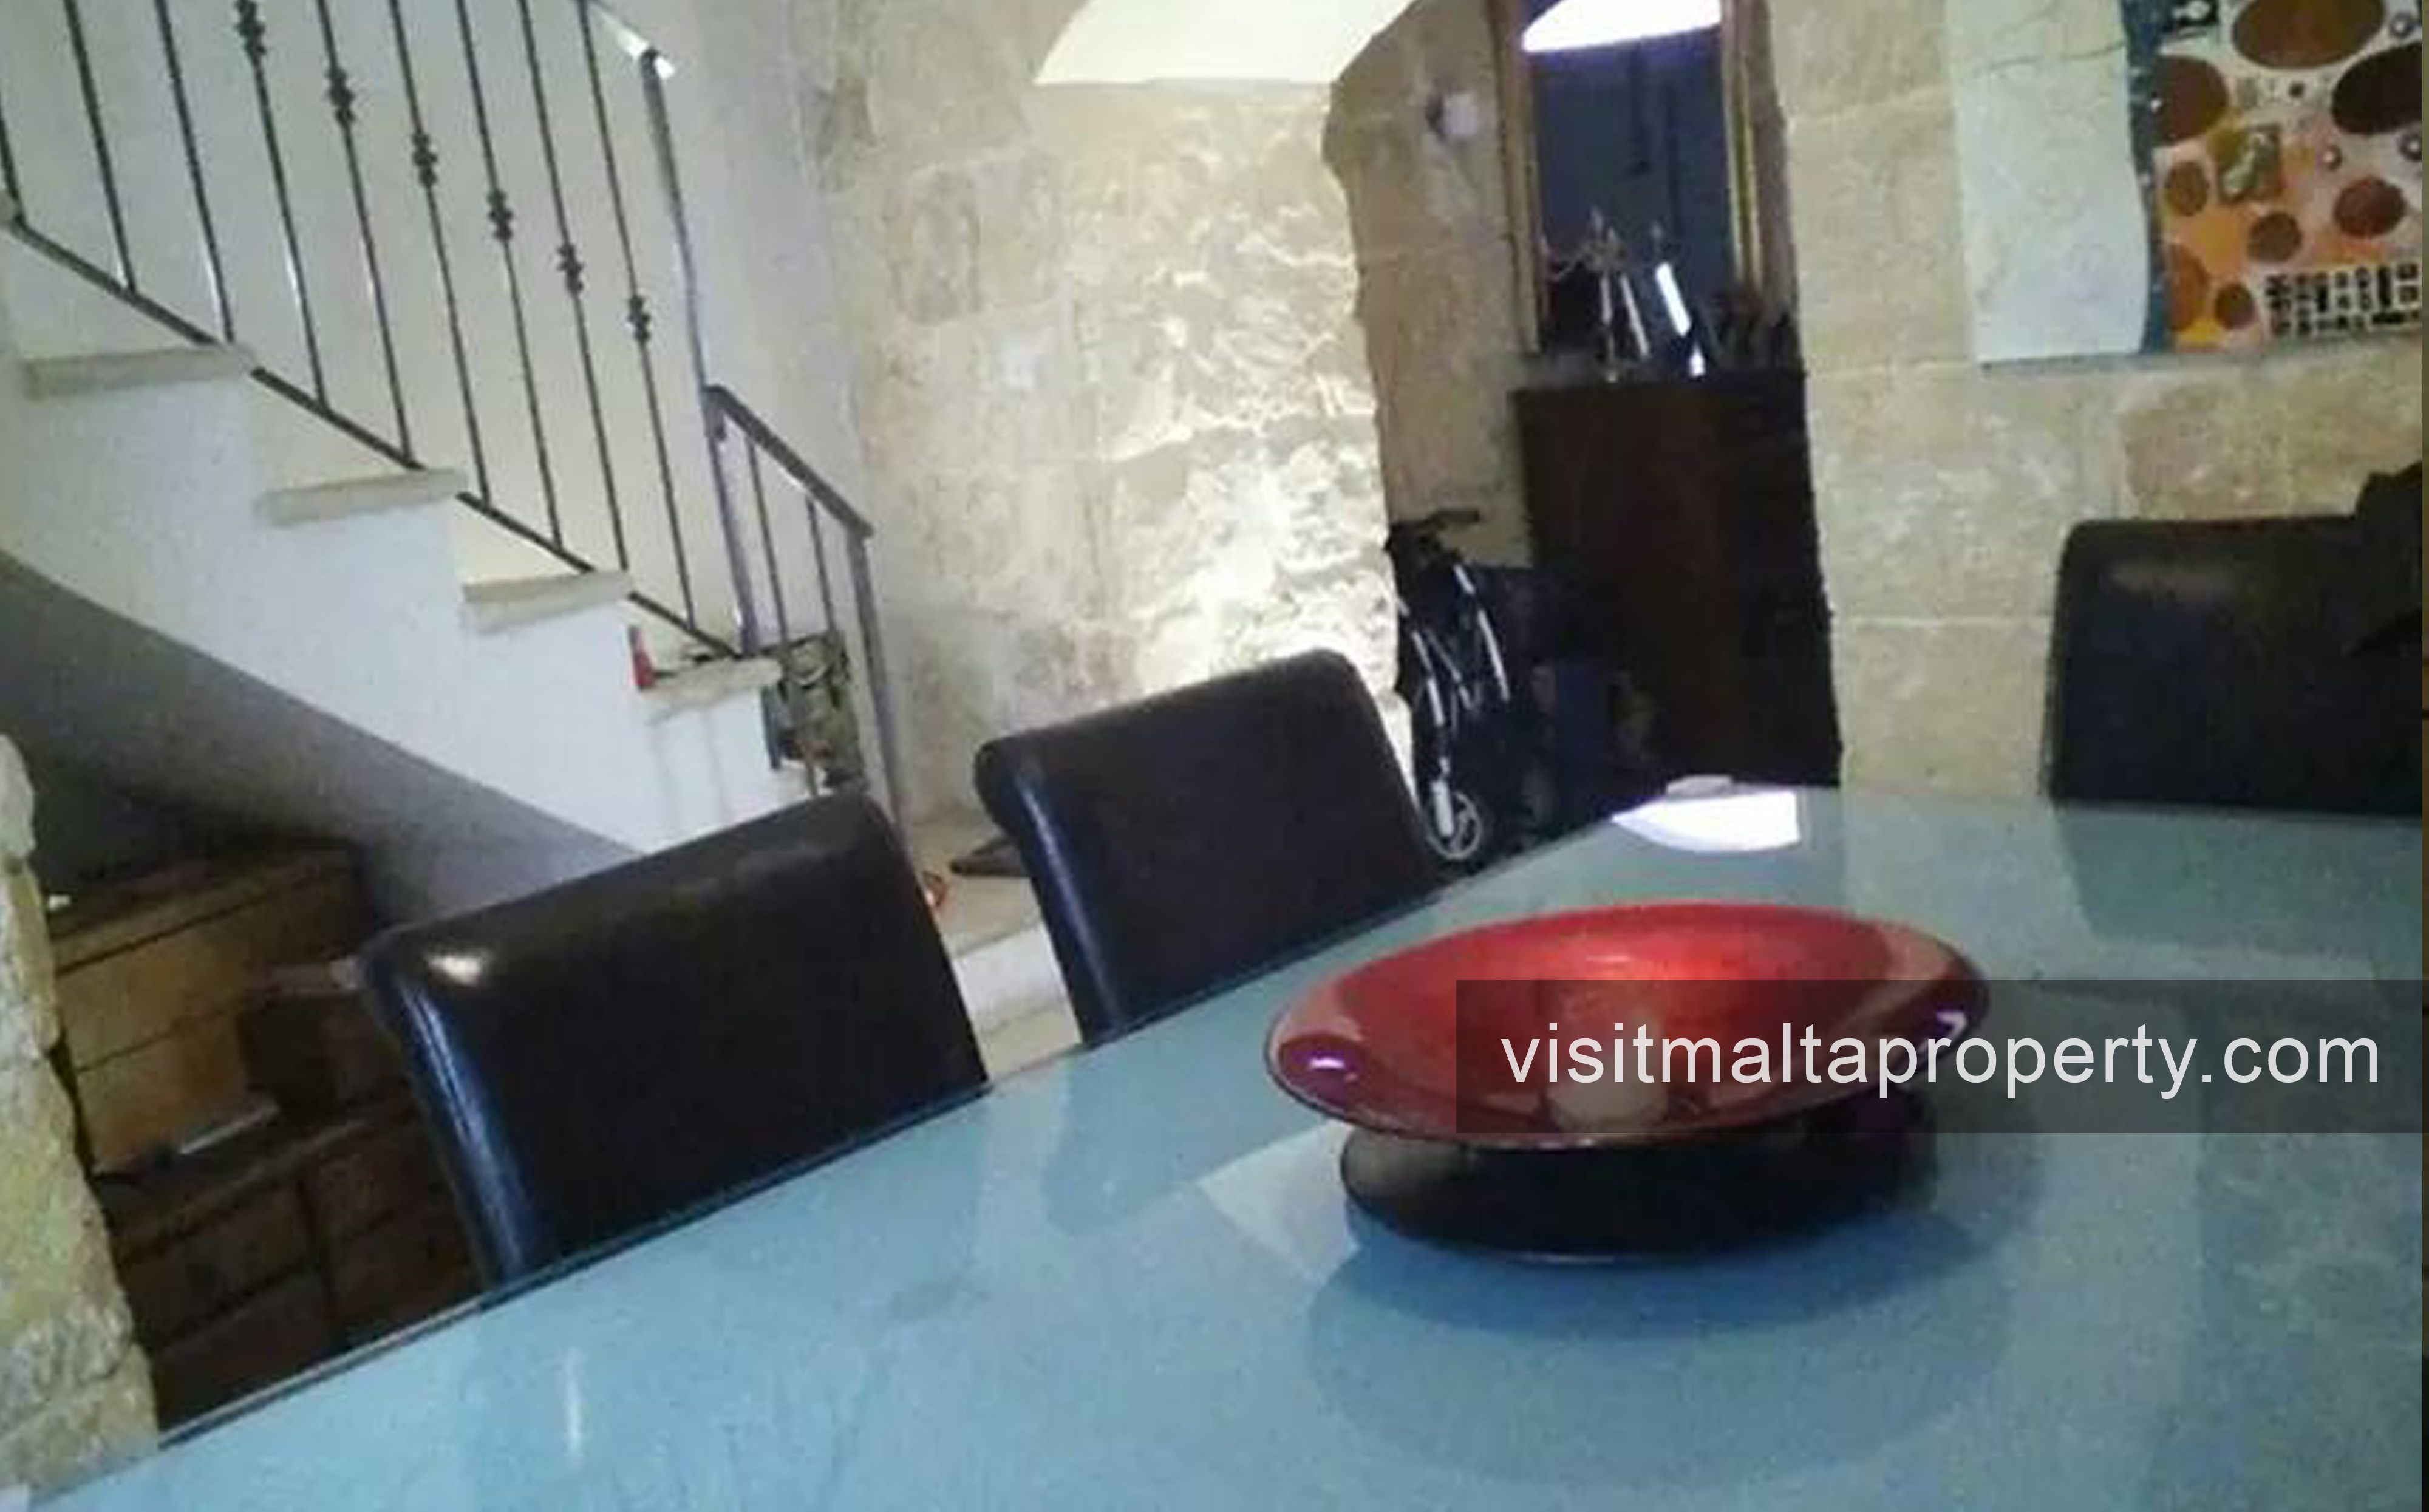 300 Year Old 3 Bed House of Character, Mosta